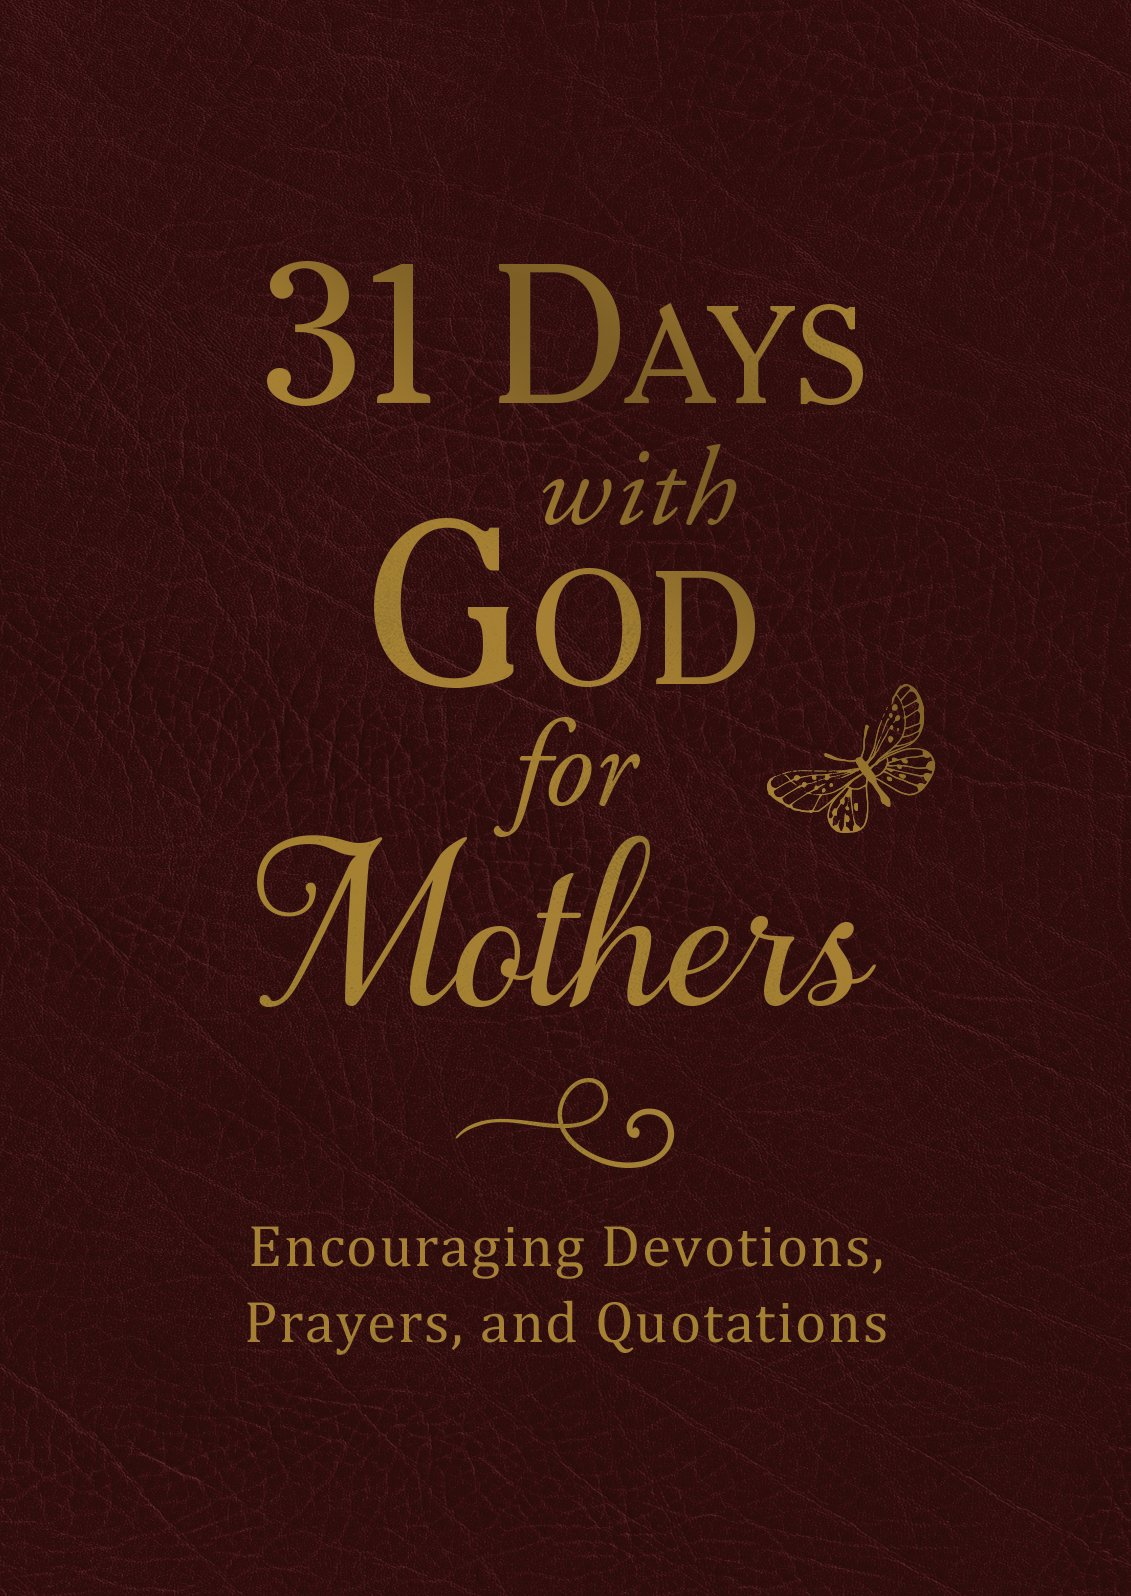 Download 31 Days with God for Mothers (Burgundy): Encouraging Devotions, Prayers, and Quotations ebook